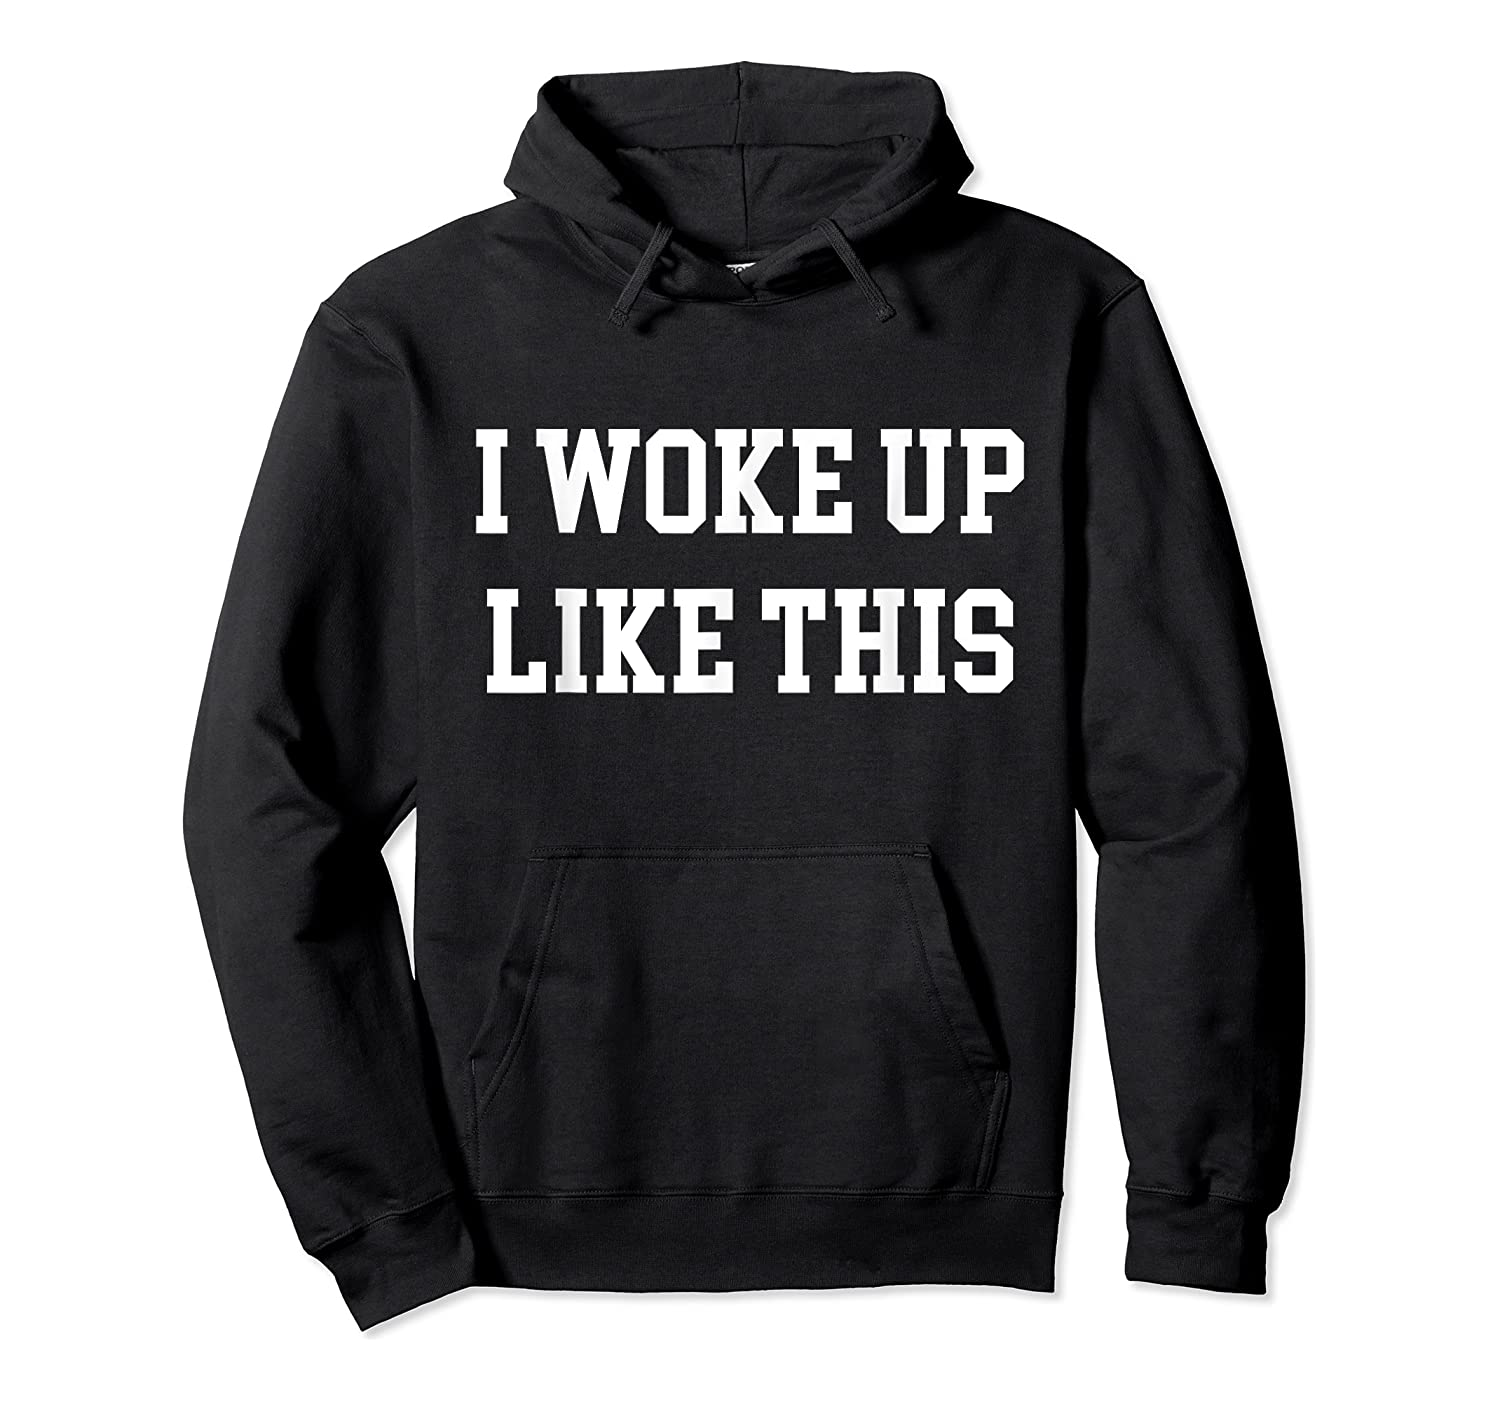 Lke Ths Funny Gag Novelty Gift Dea Shirts Unisex Pullover Hoodie